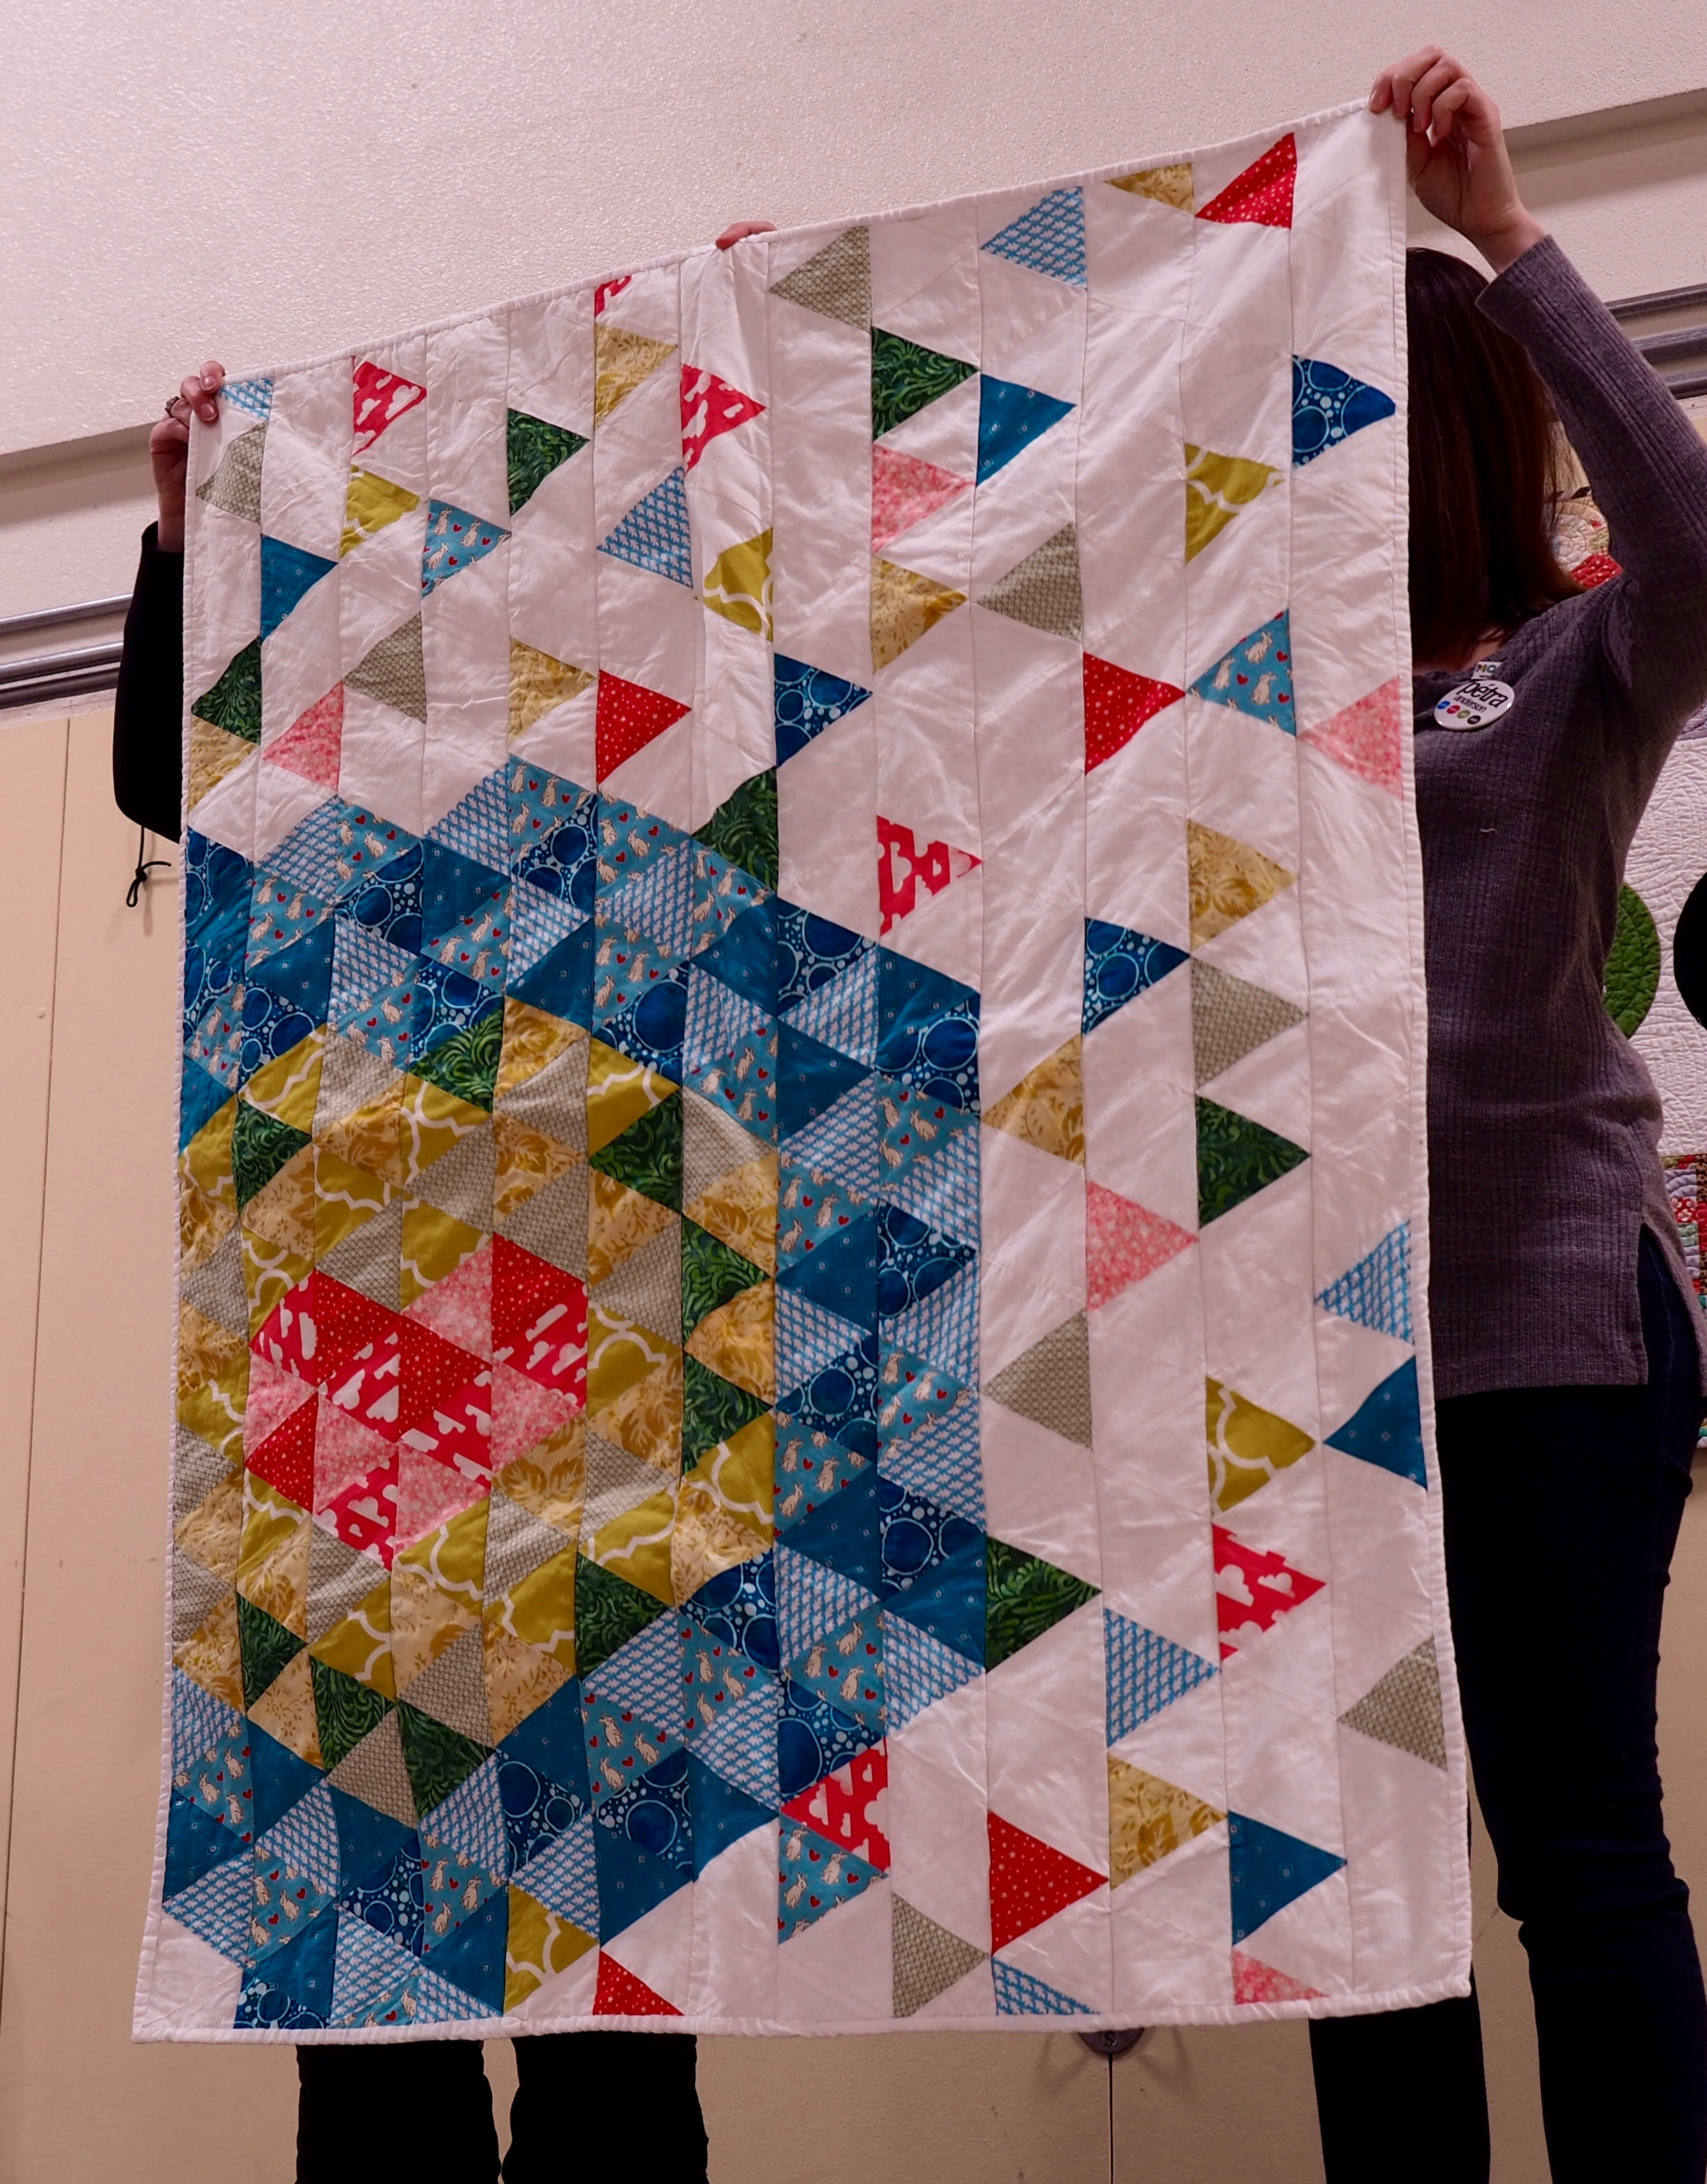 Quilt pattern by Sunshine Handcrafts (triangles) quilt by Maddison Stapleton